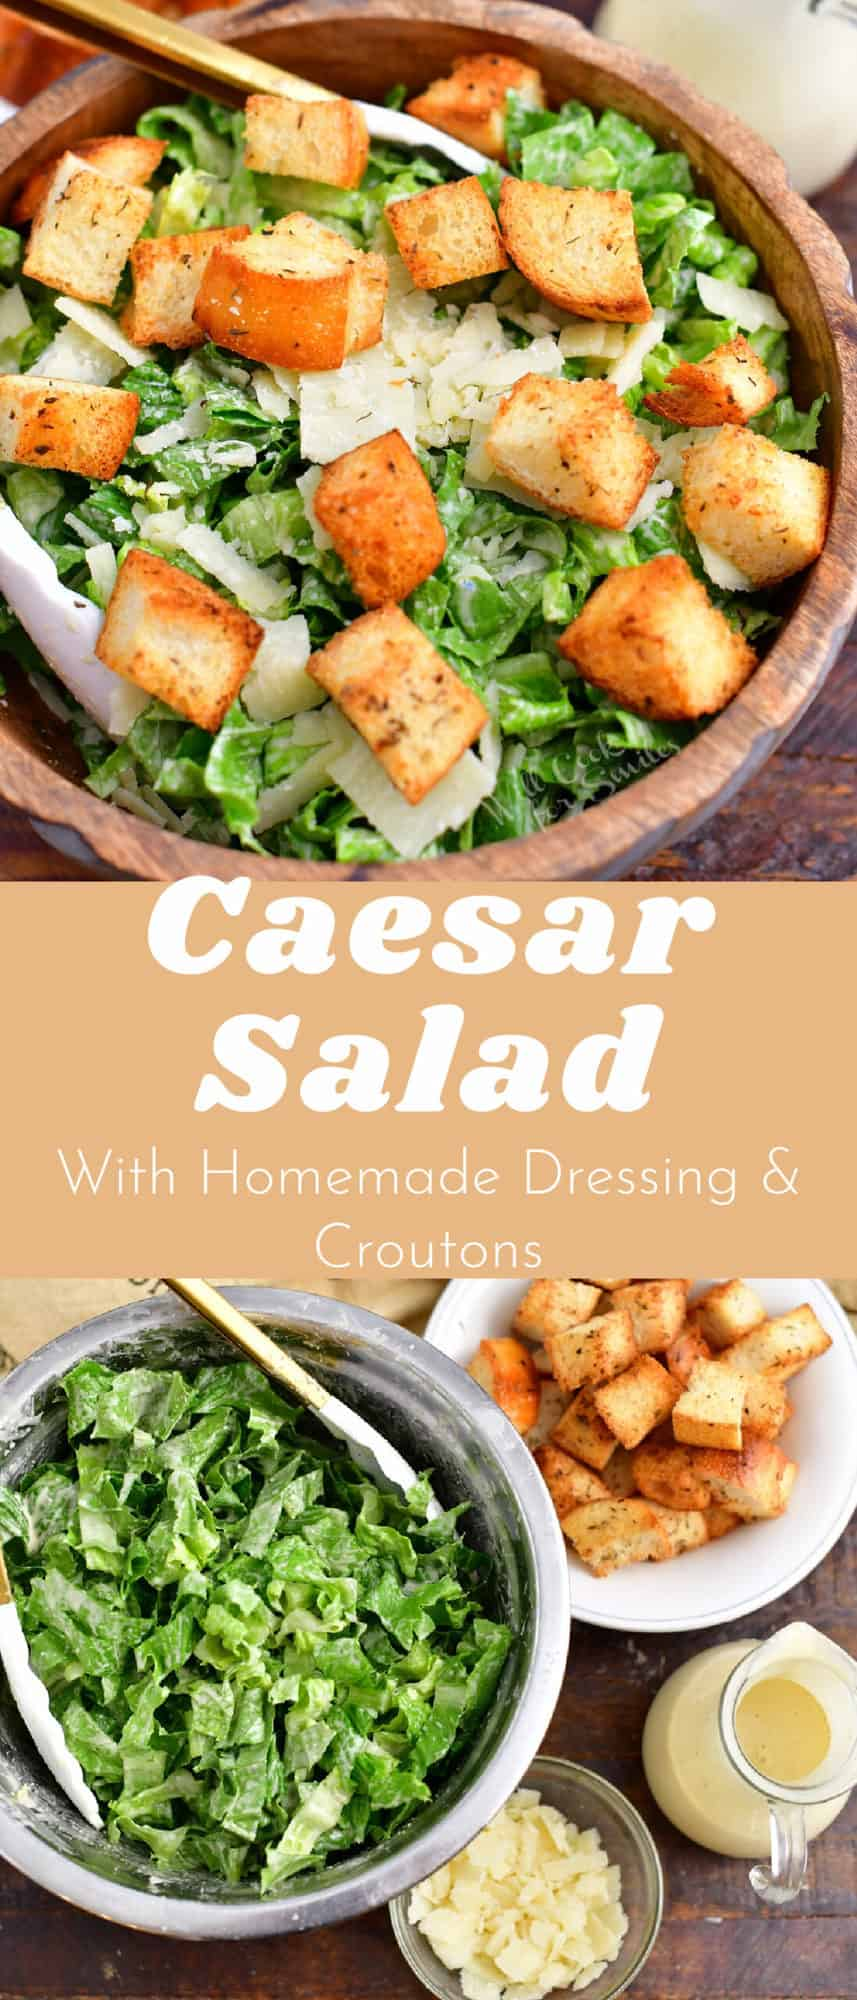 titled Pinterest image (and shown): Caesar Salad with Homemade Dressing and Croutons